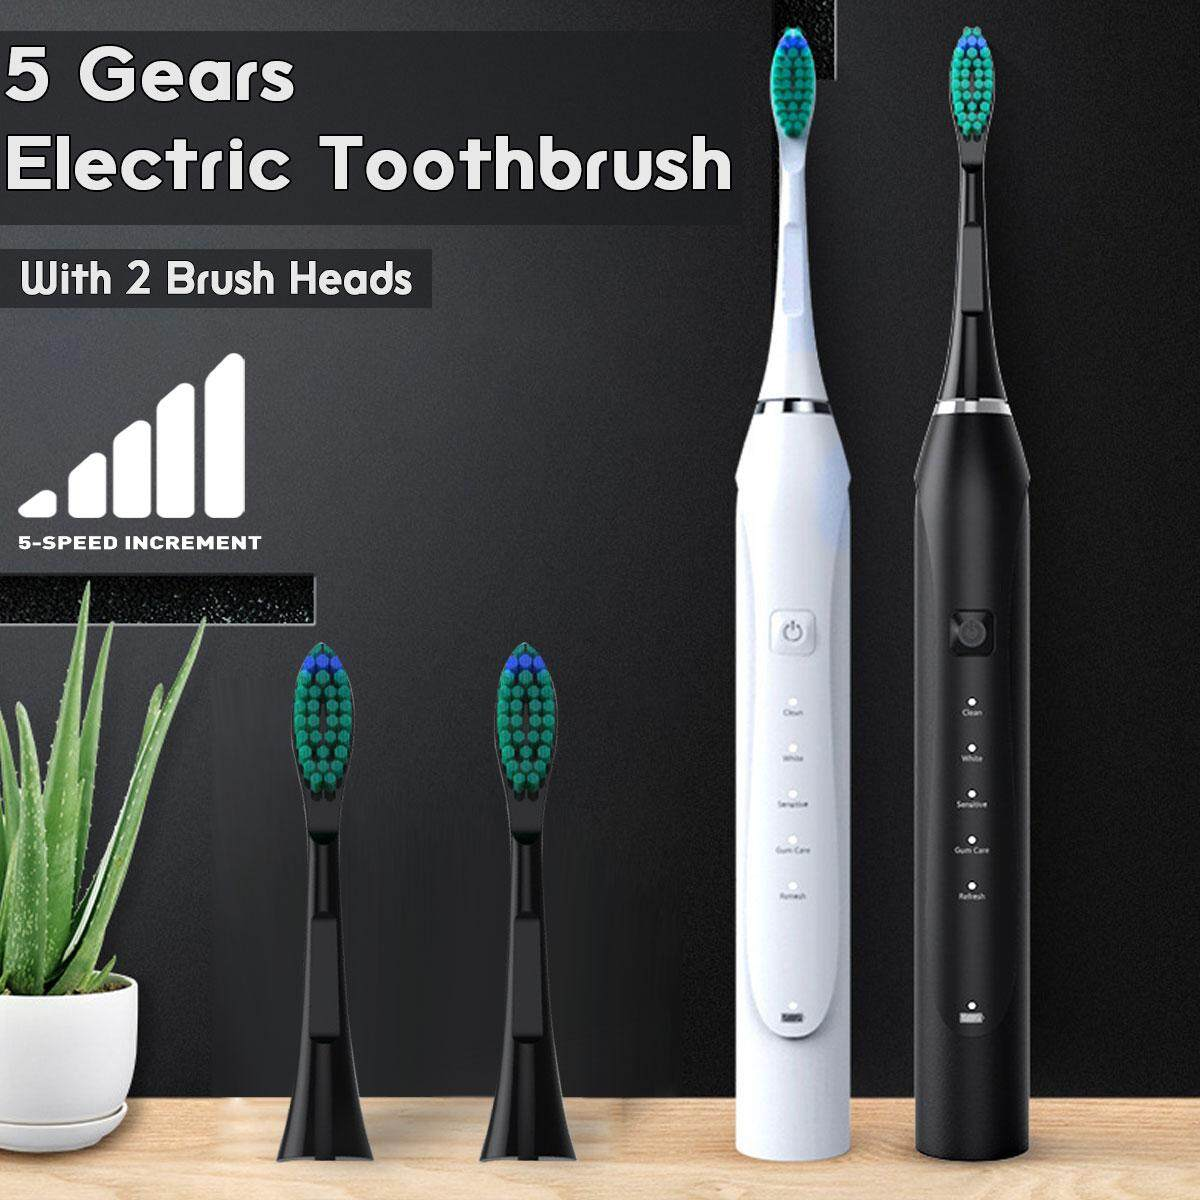 2 Replaced Toothbrush Head Sonic Electric Toothbrush 5 Gears Oral Teeth W*hitening Black,White